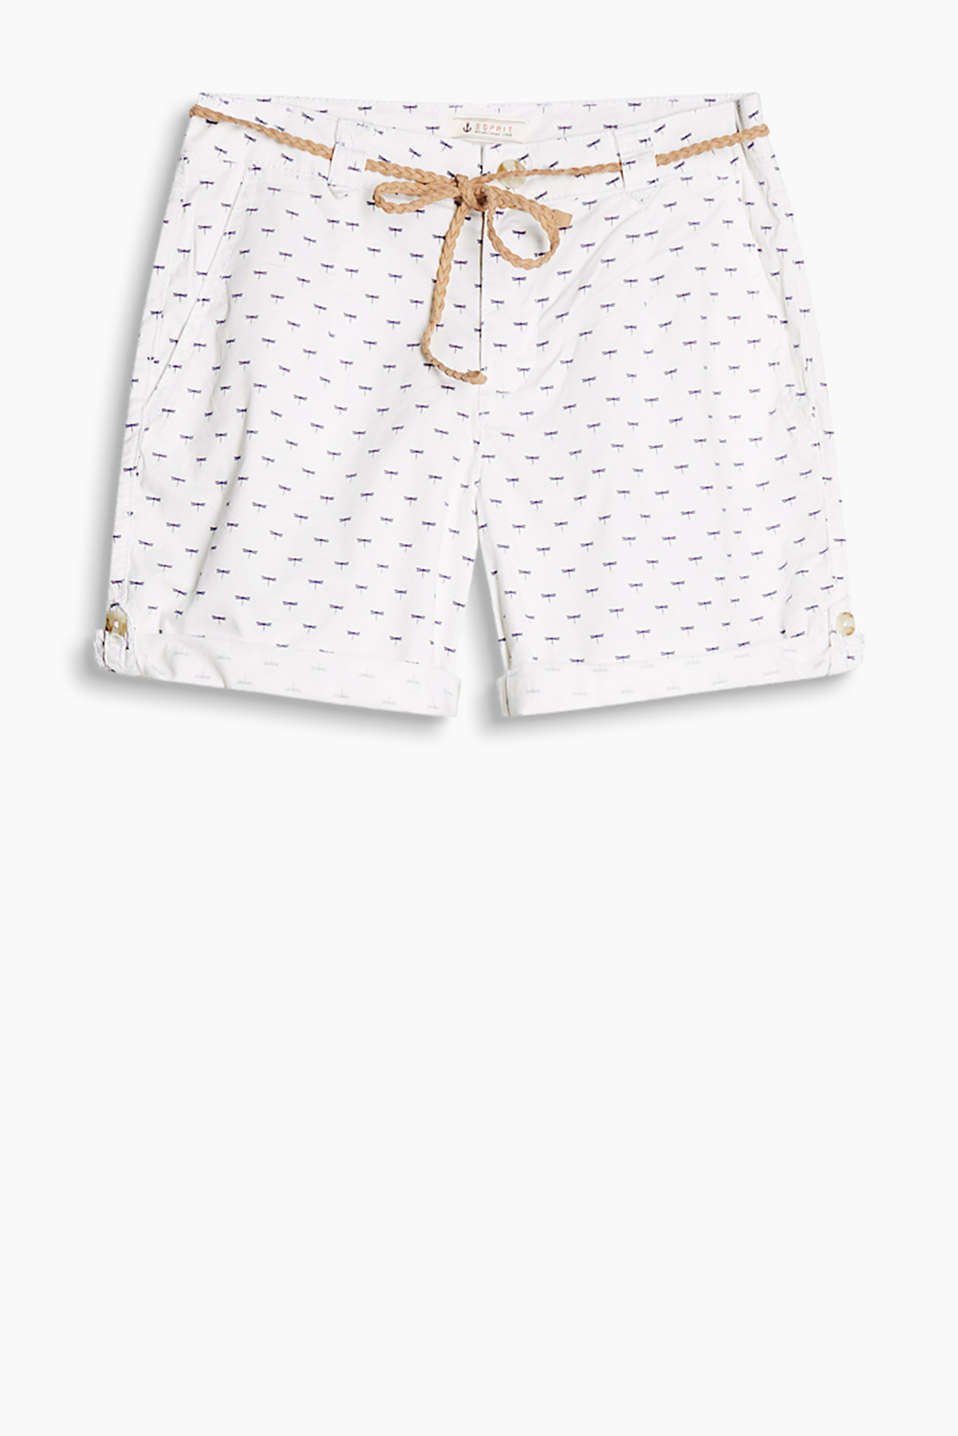 Lightweight cotton twill shorts with a dragonfly print, narrow braided belt and turn-up hems